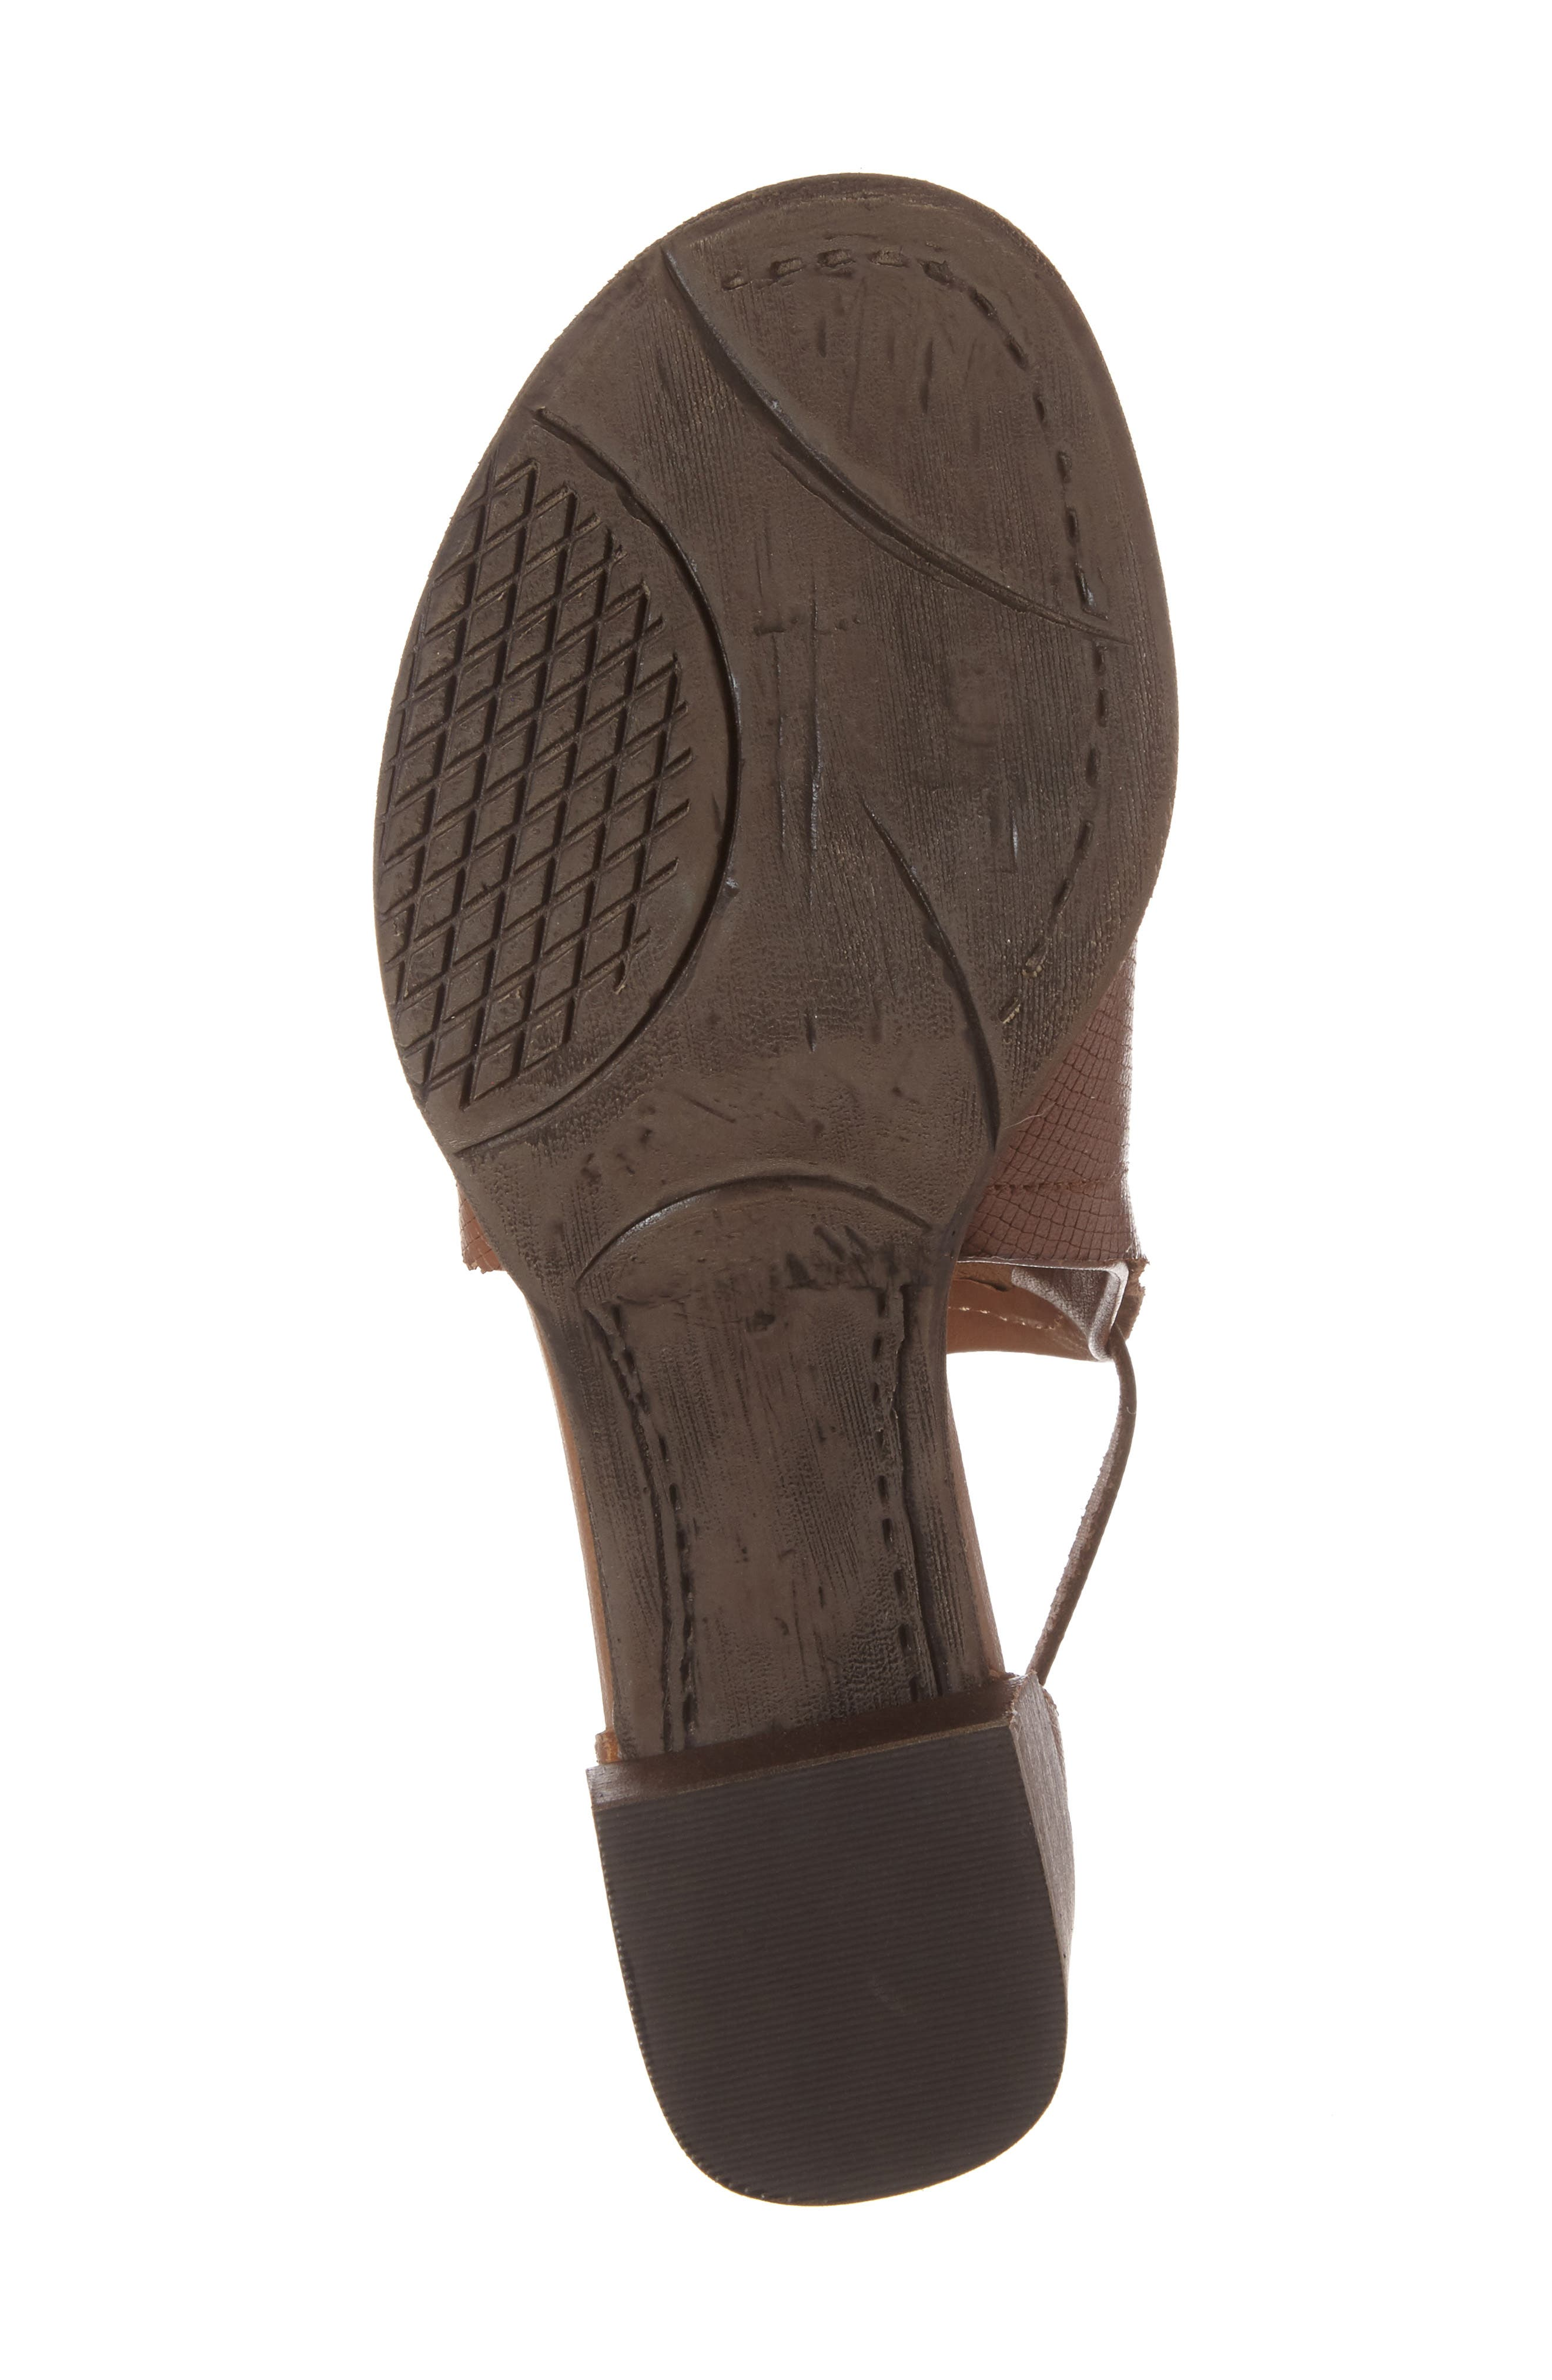 Metaphor Open Side Bootie,                             Alternate thumbnail 6, color,                             Medium Brown Leather